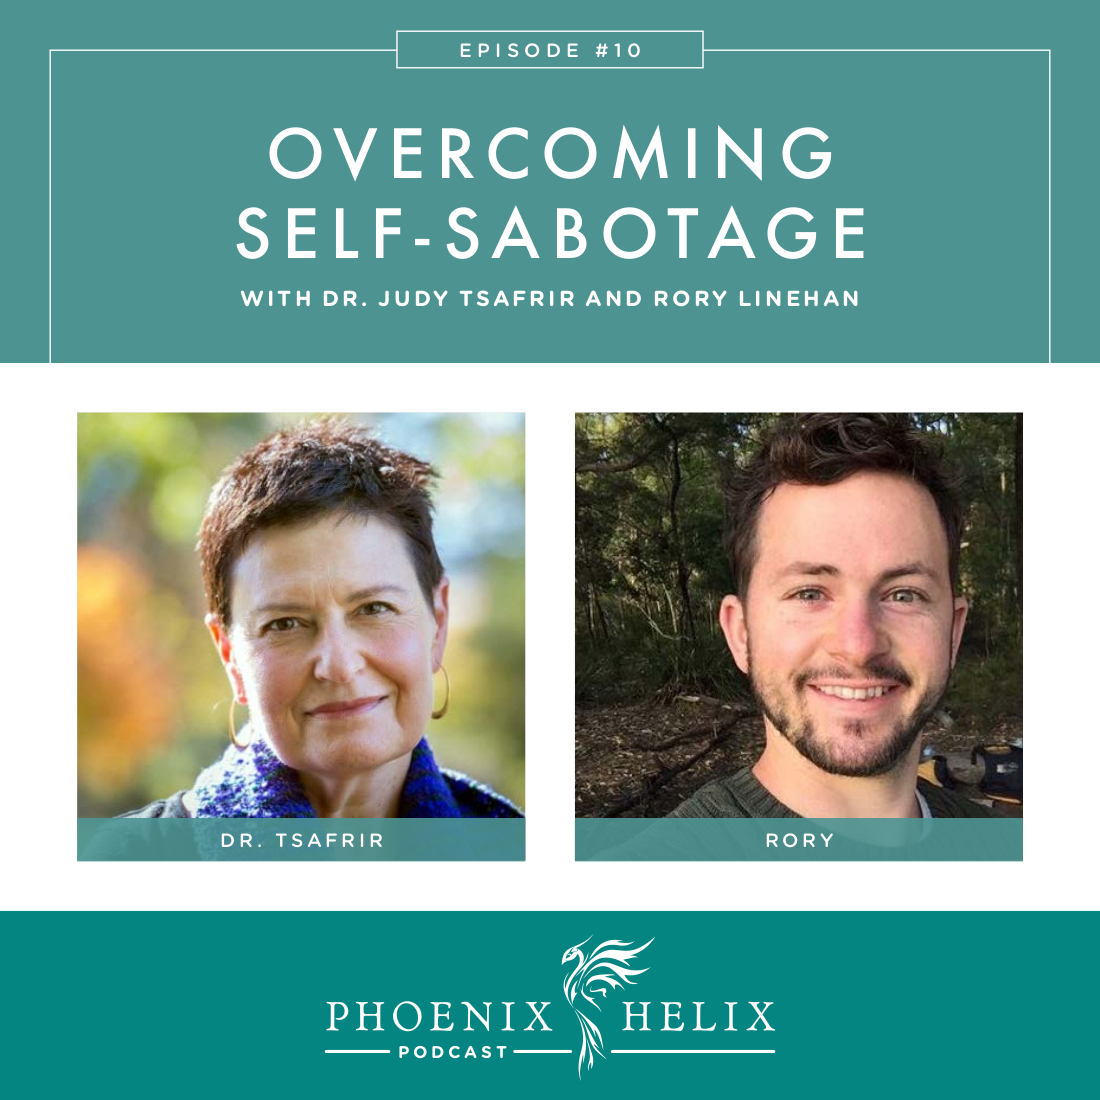 Overcoming Self-Sabotage with Dr. Judy Tsafrir and Rory Linehan | Phoenix Helix Podcast